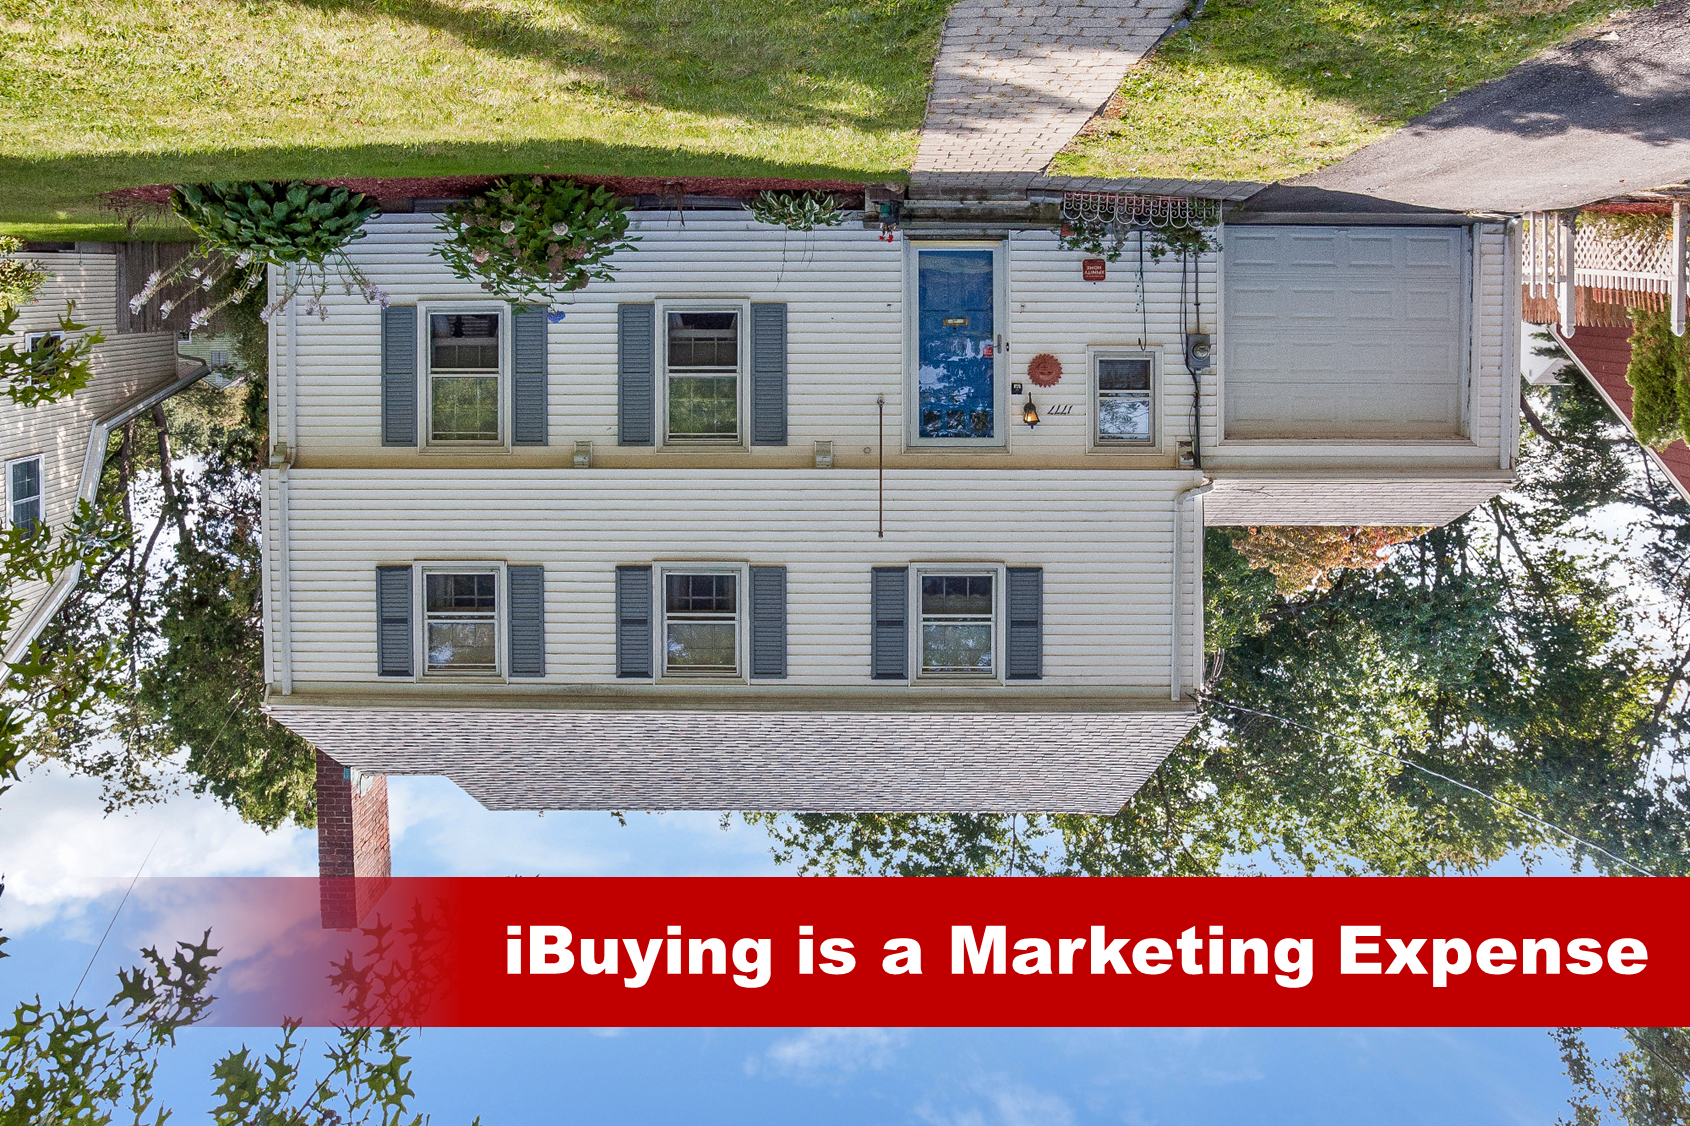 iBuying is a Marketing Expense